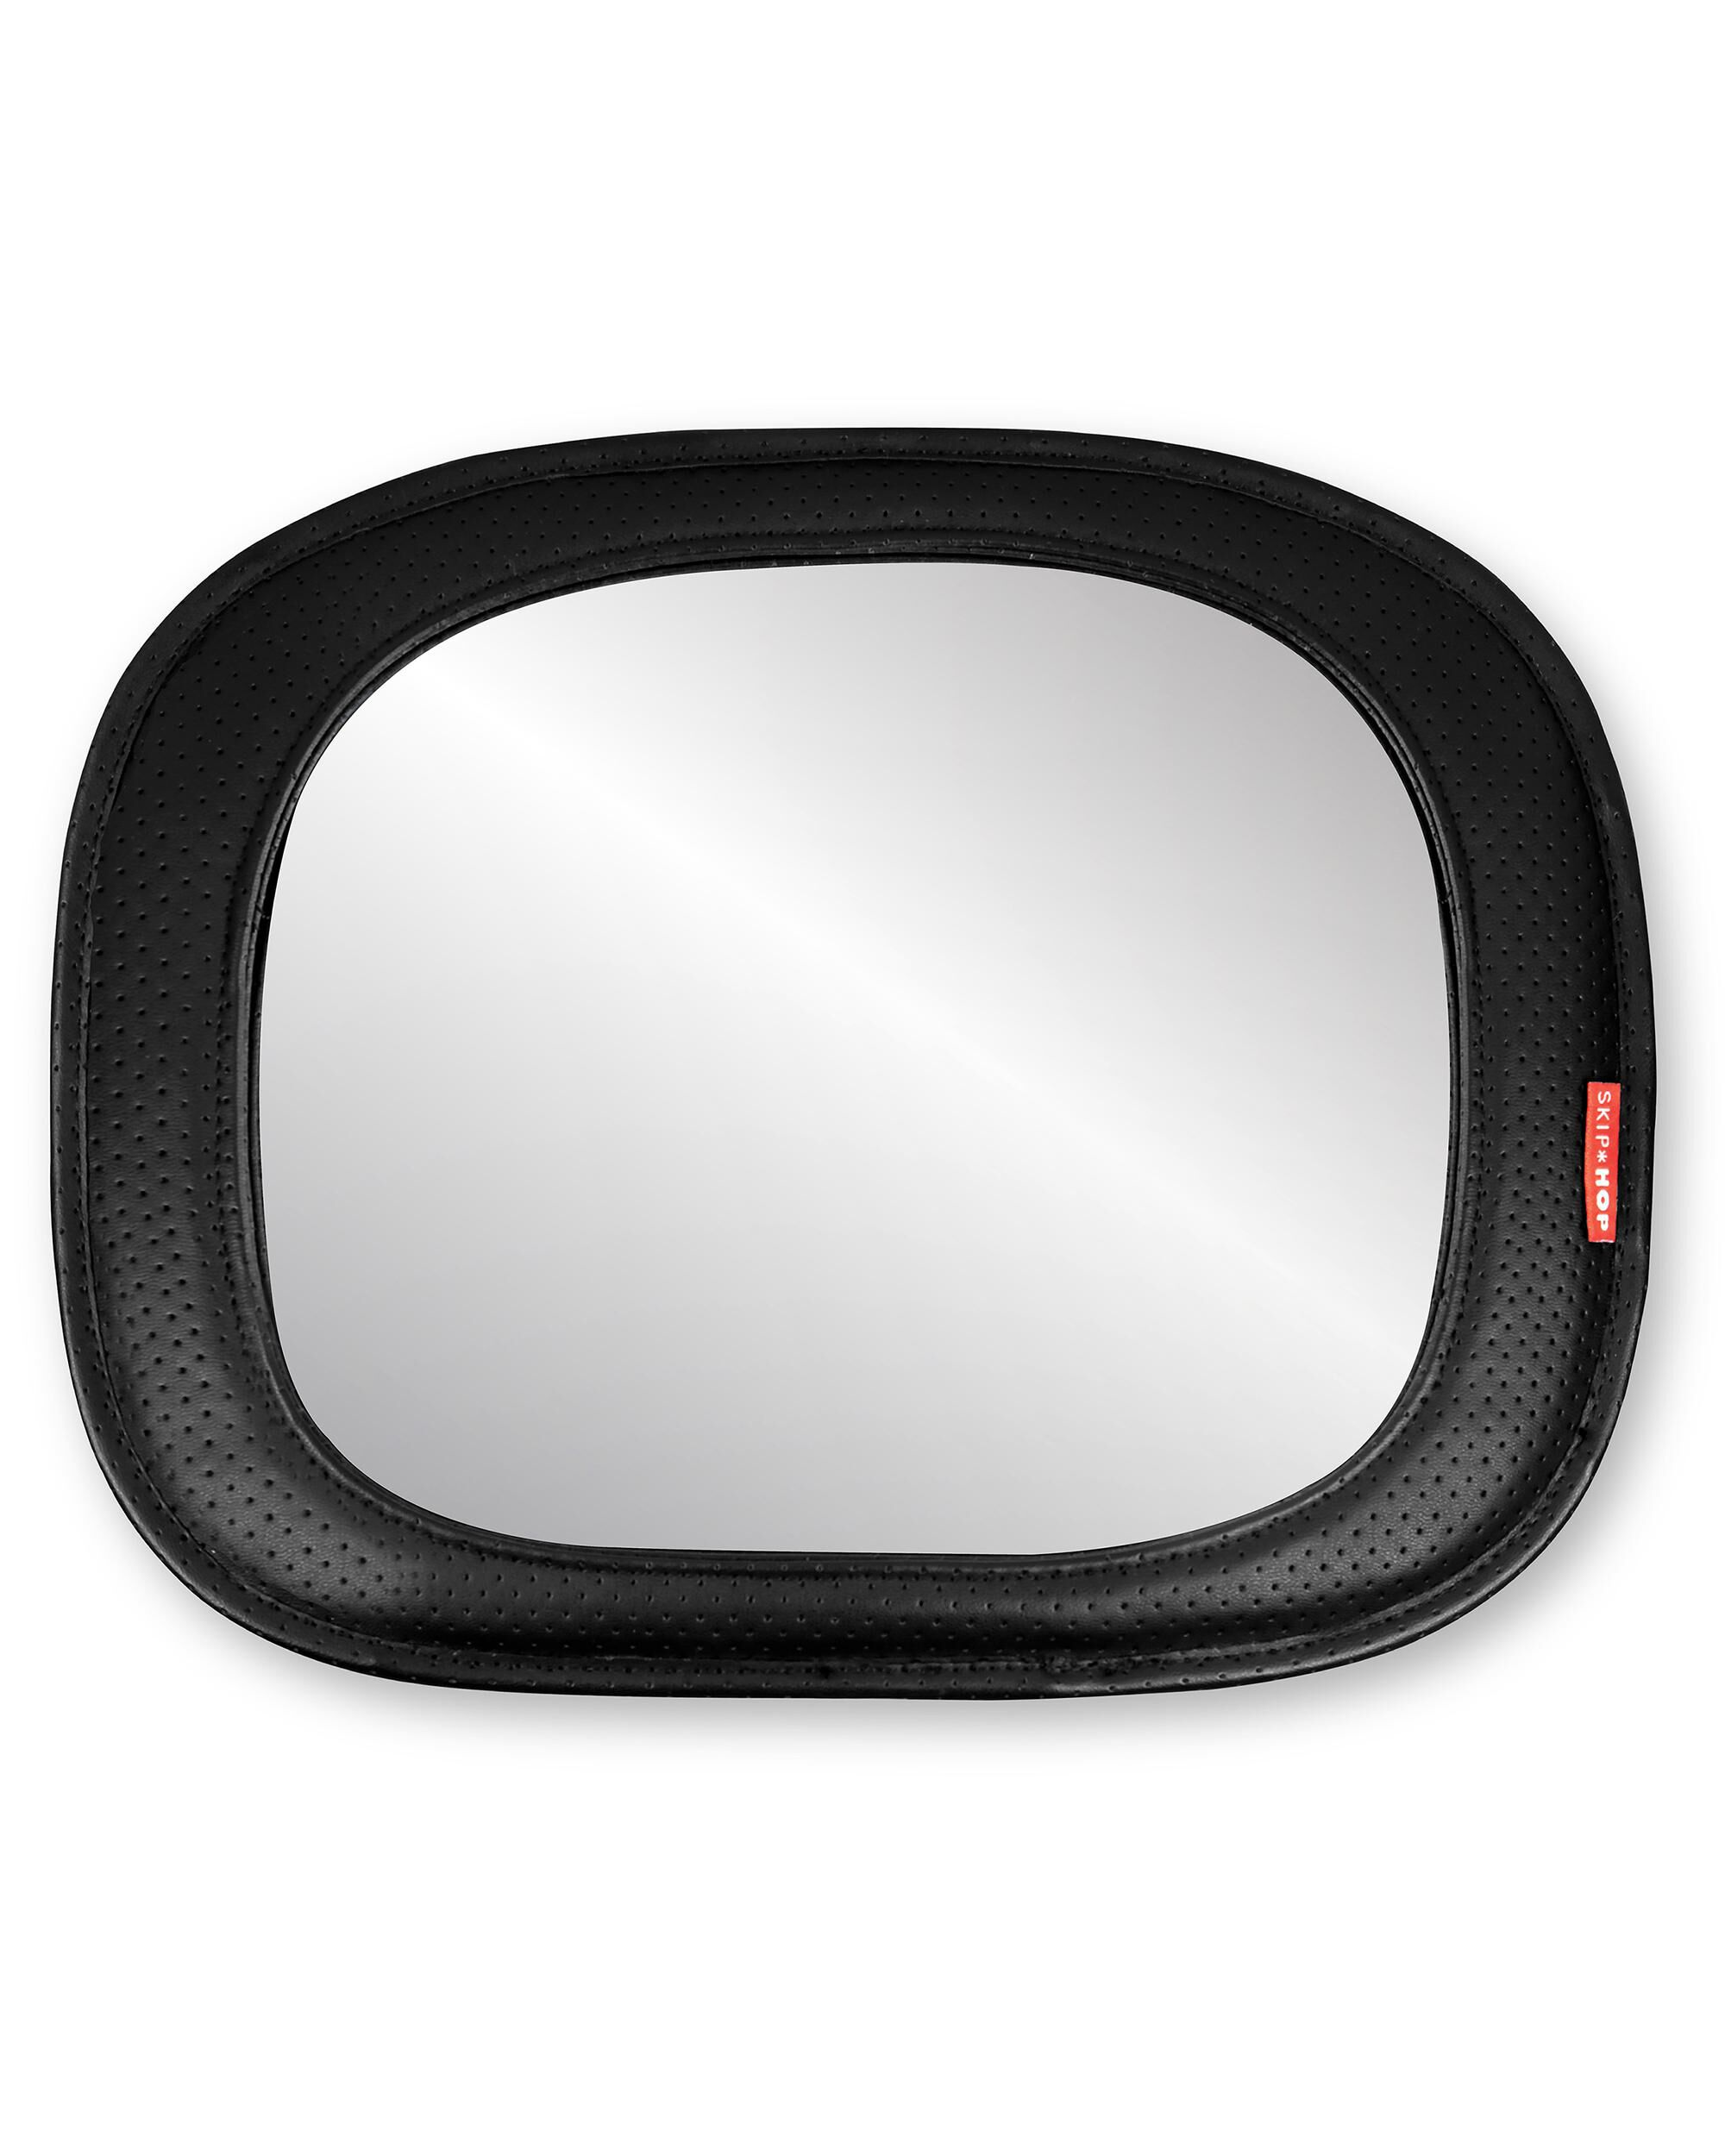 Carters Style Driven Backseat Baby Mirror